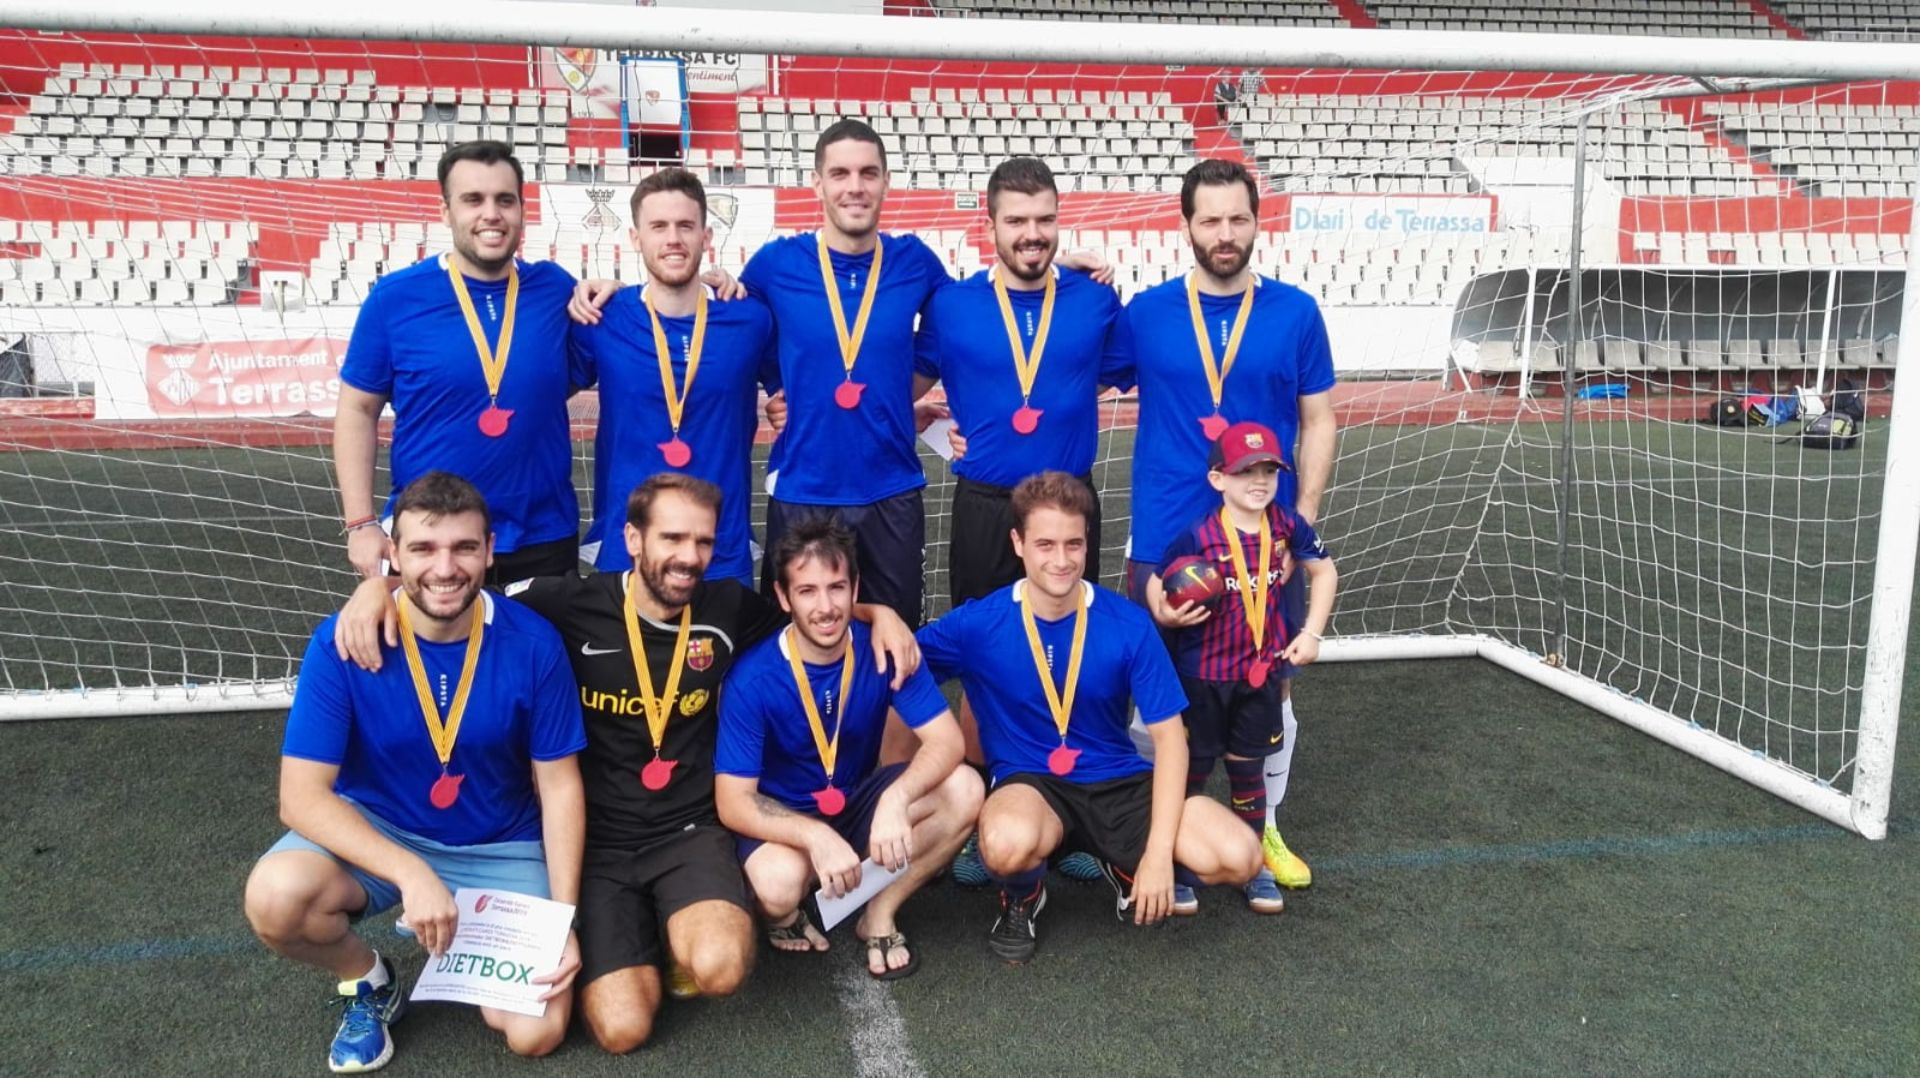 CORPORATE GAMES TERRASSA IMG-20190915-WA0022